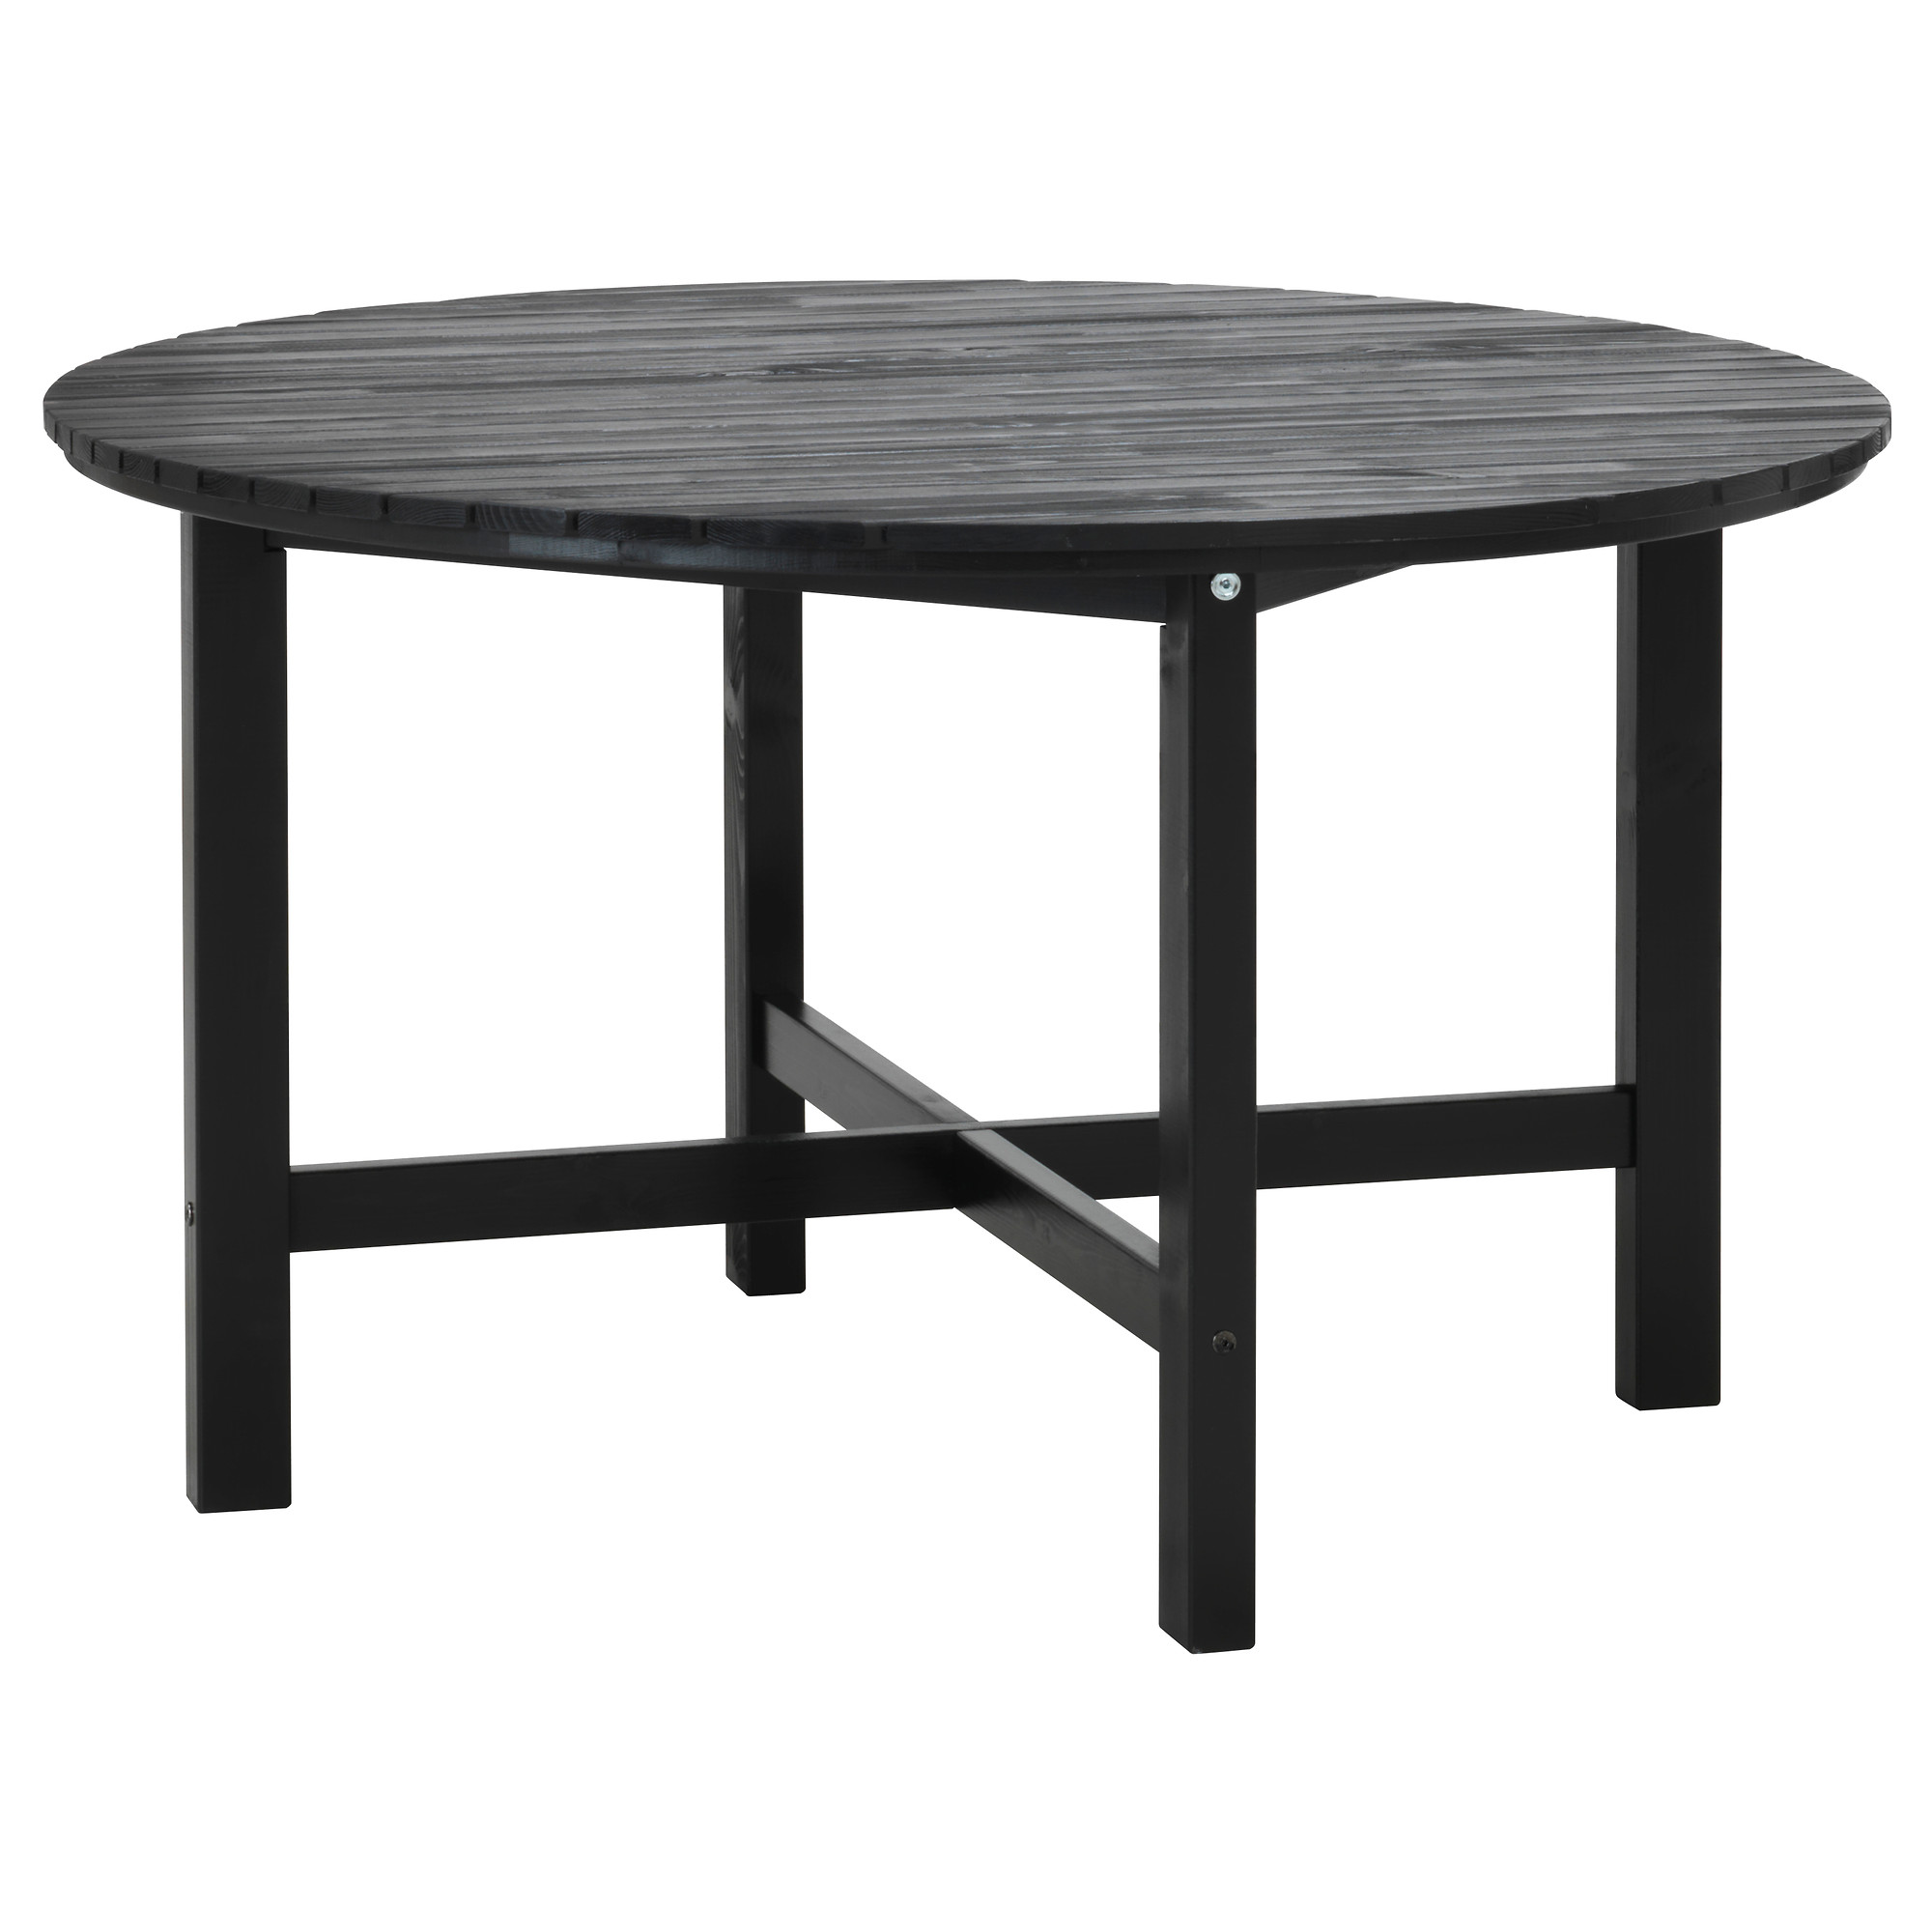 enchanting black ikea coffee table with storage make our pine outdoor furniture durable and resistant decay possible produce from heartwood lack hack accent kragsta top red nest